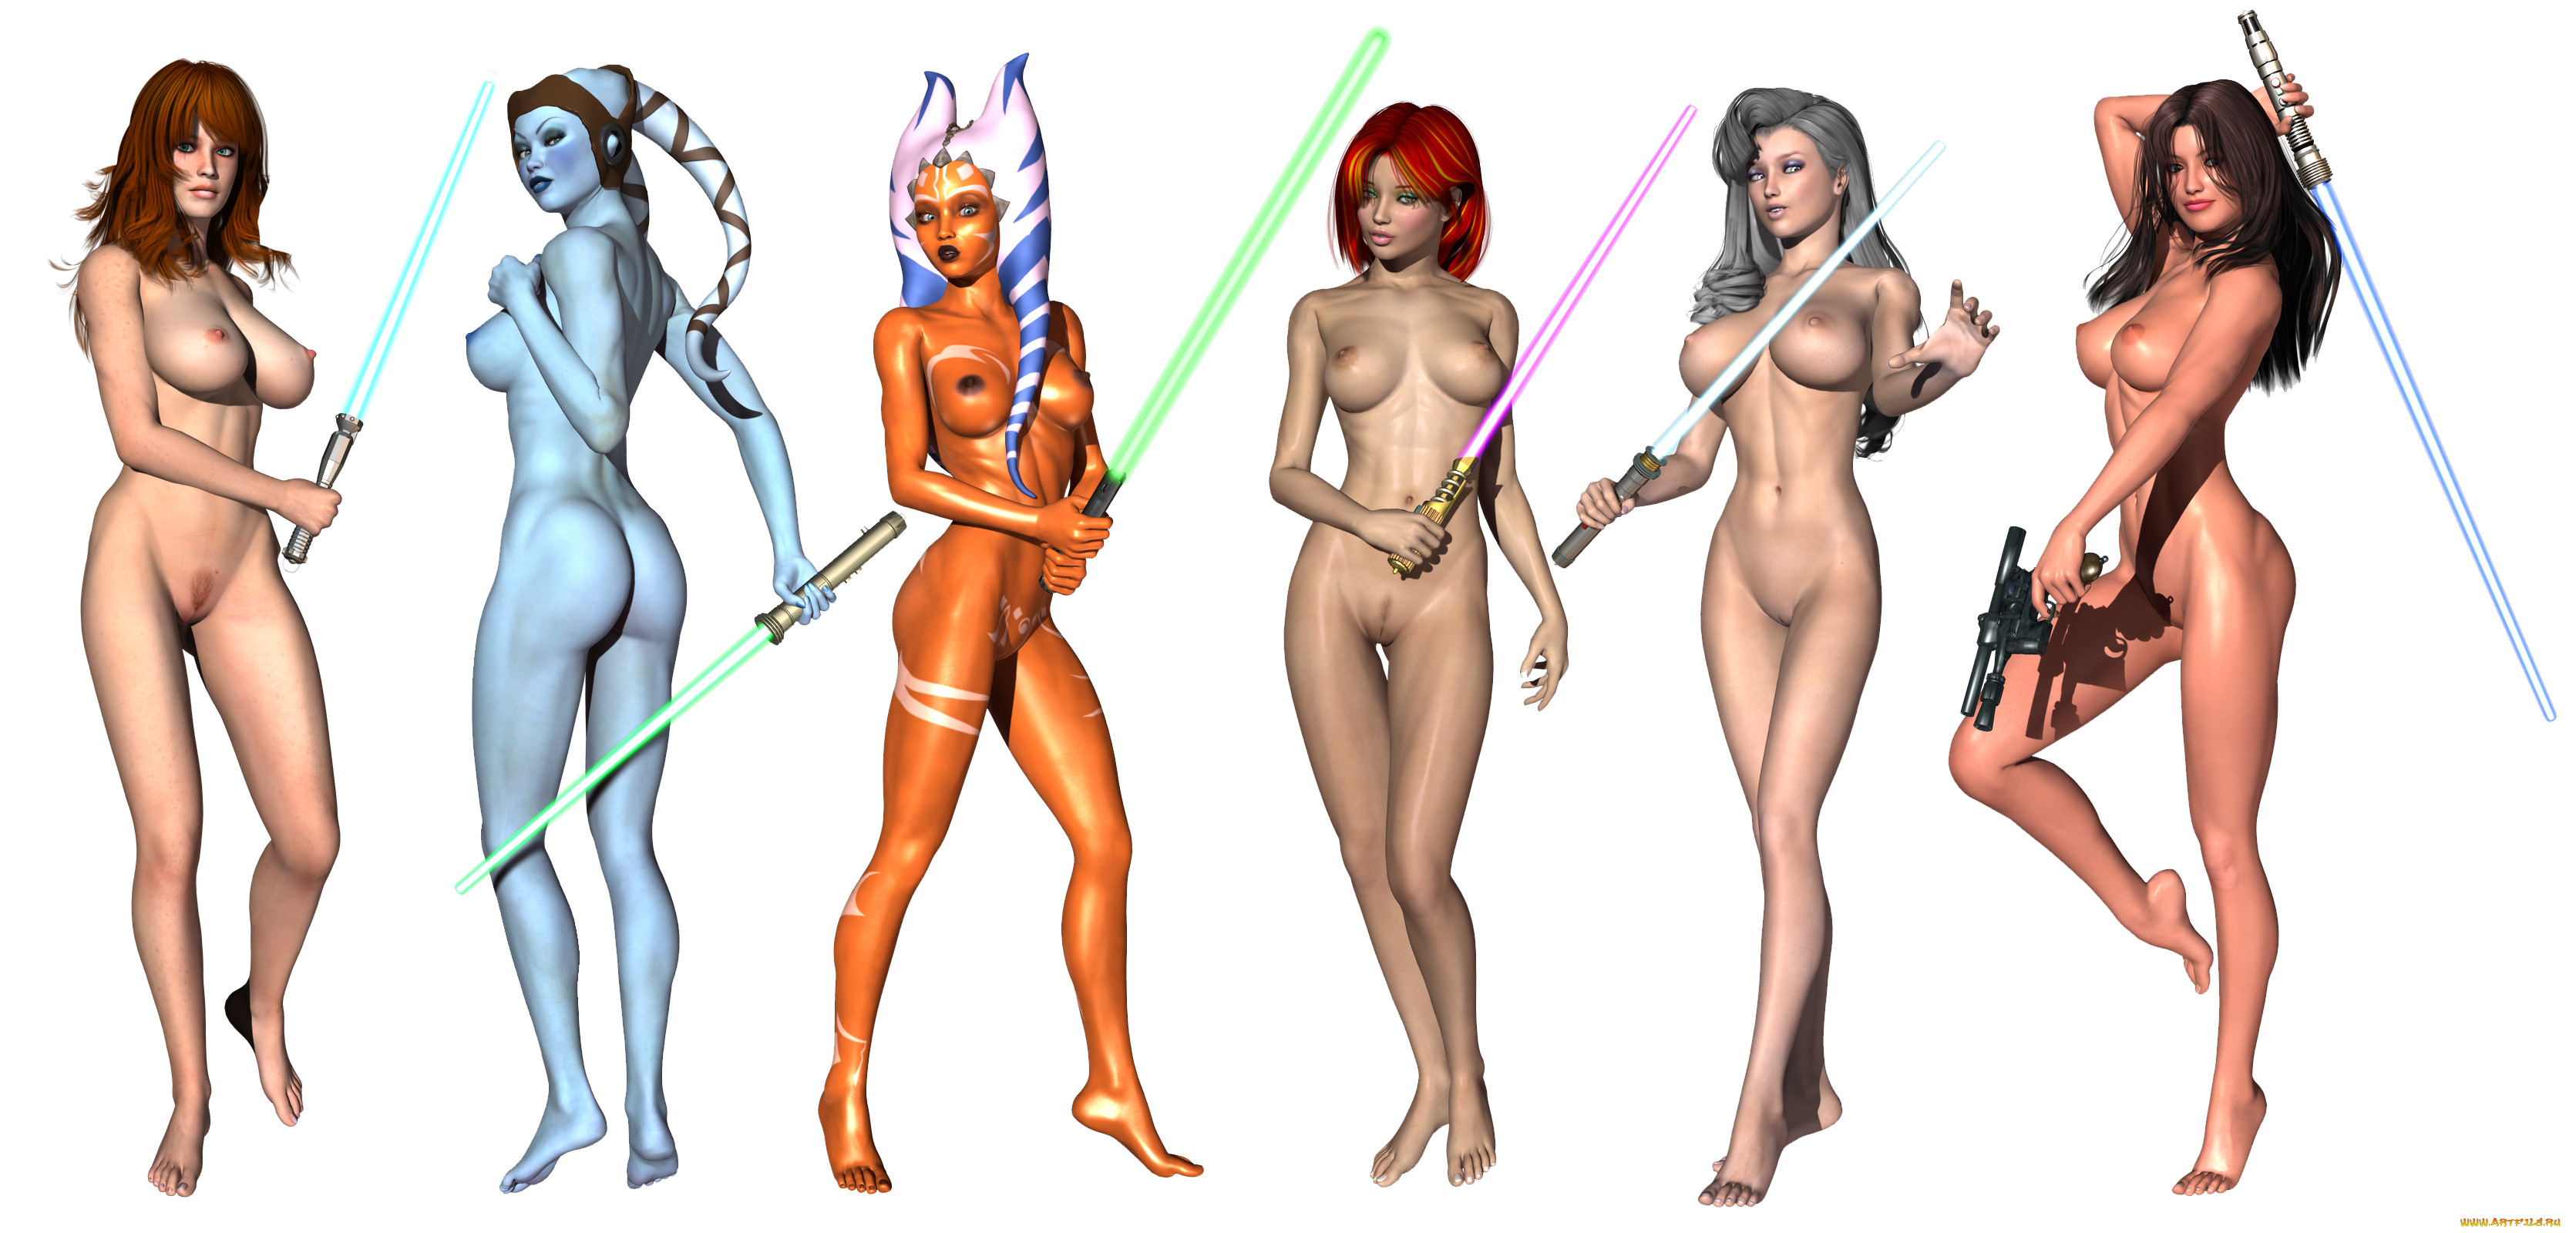 Naked jedi girls erotic gallery